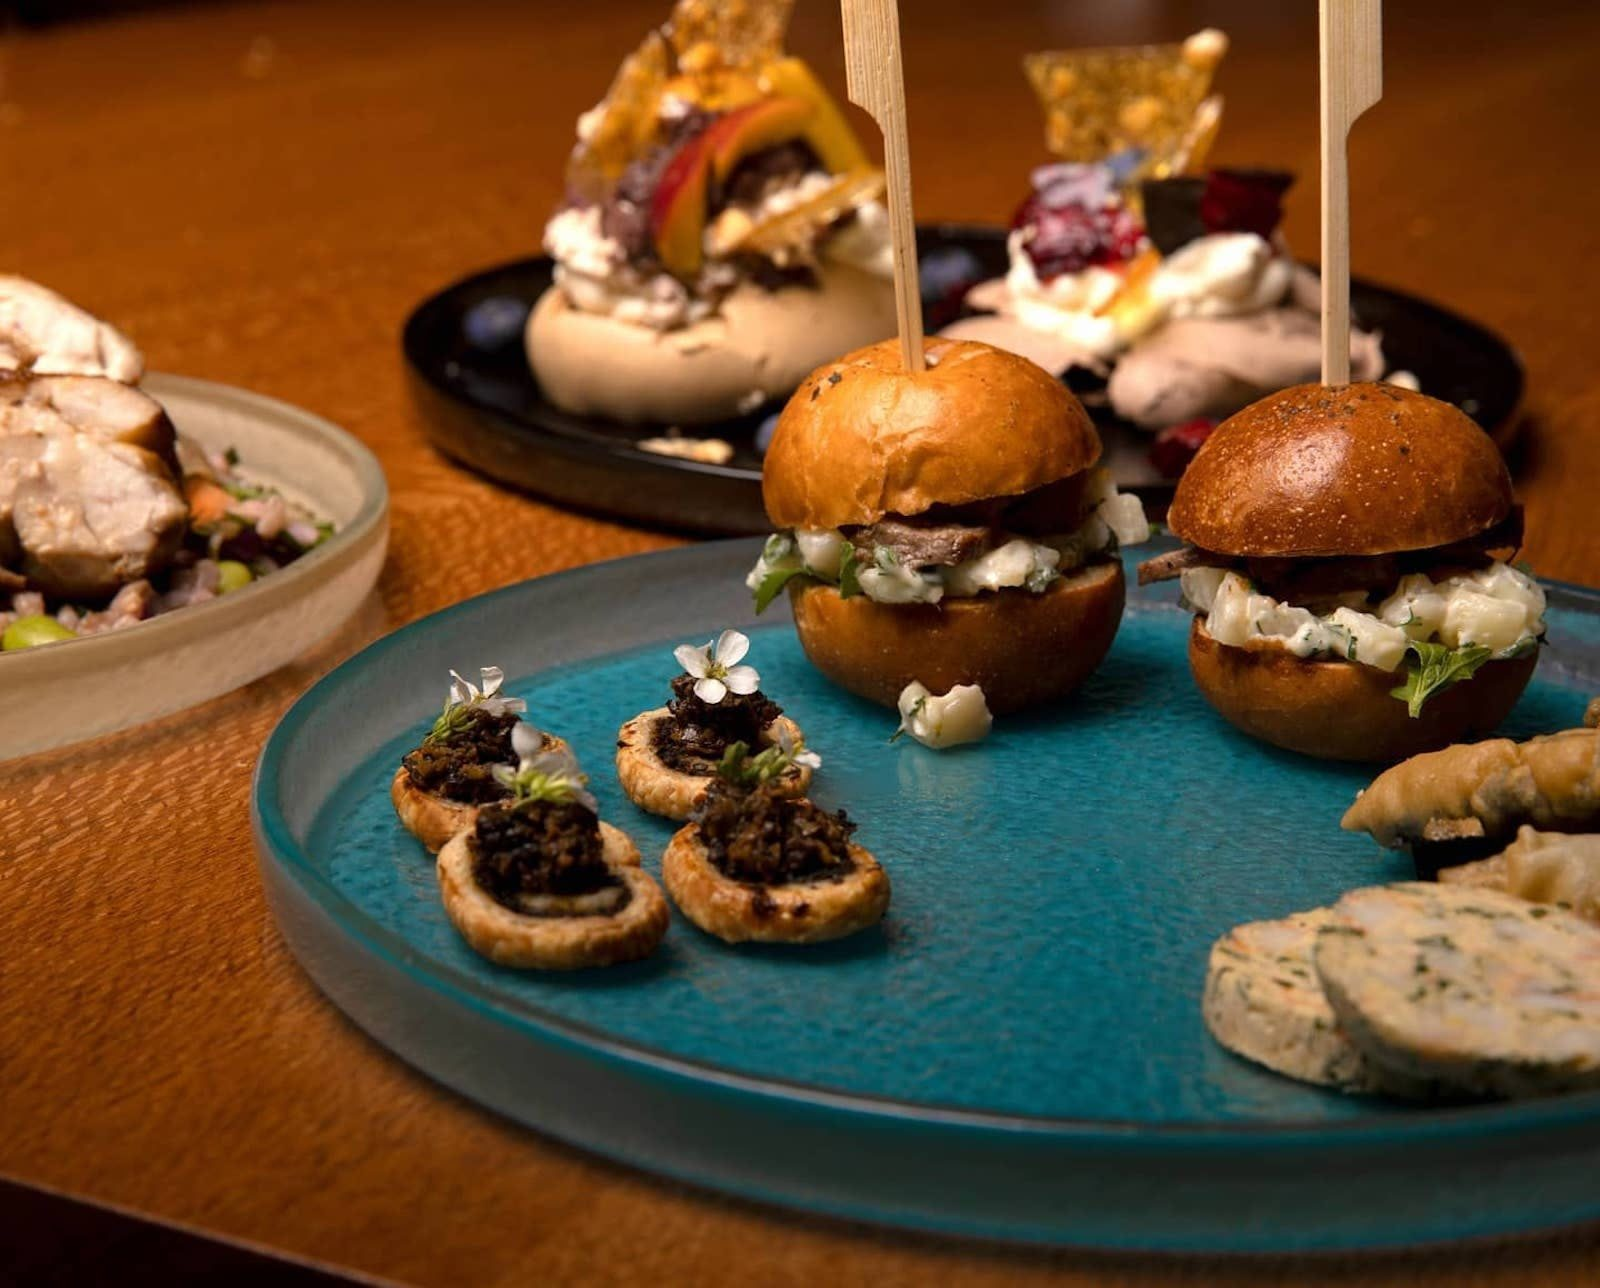 mini burgers and appetisers on teal plate